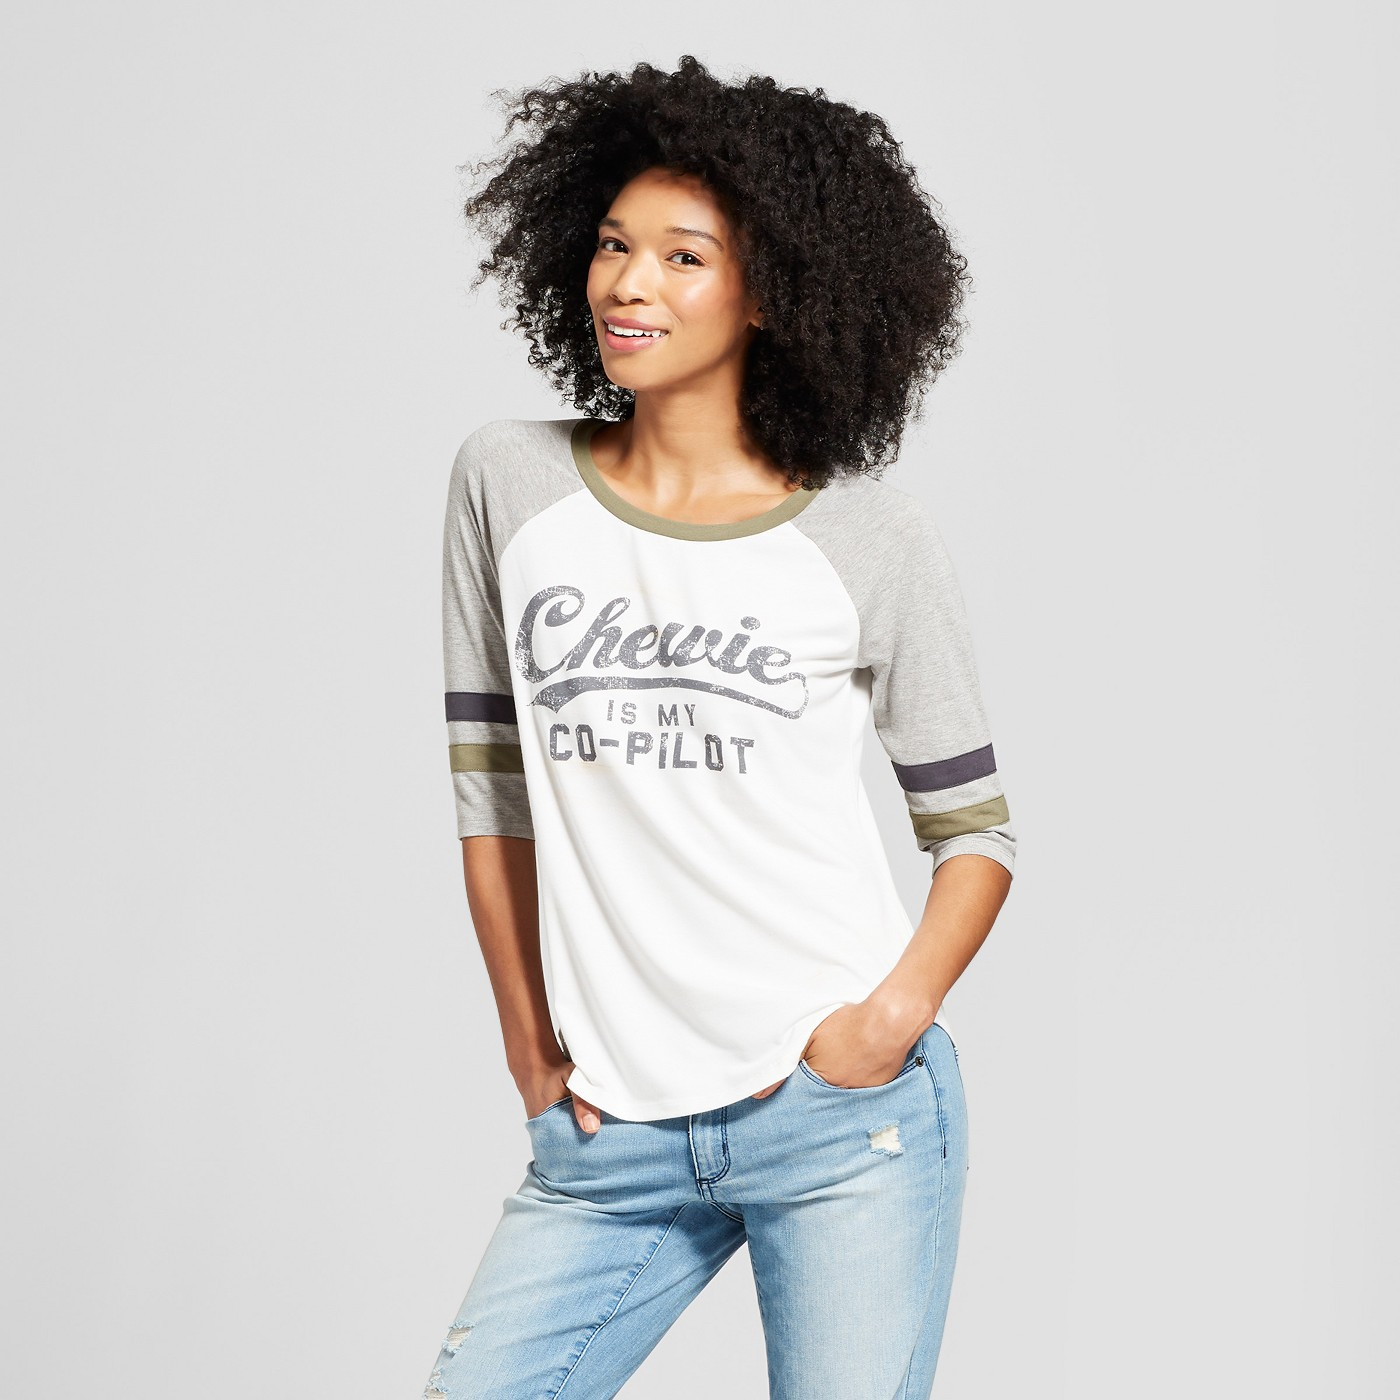 933ca6ea621 Target  Clothing   Shoes Clearance Up to 70% Off + Extra 20% Off!  3 women s  tops!